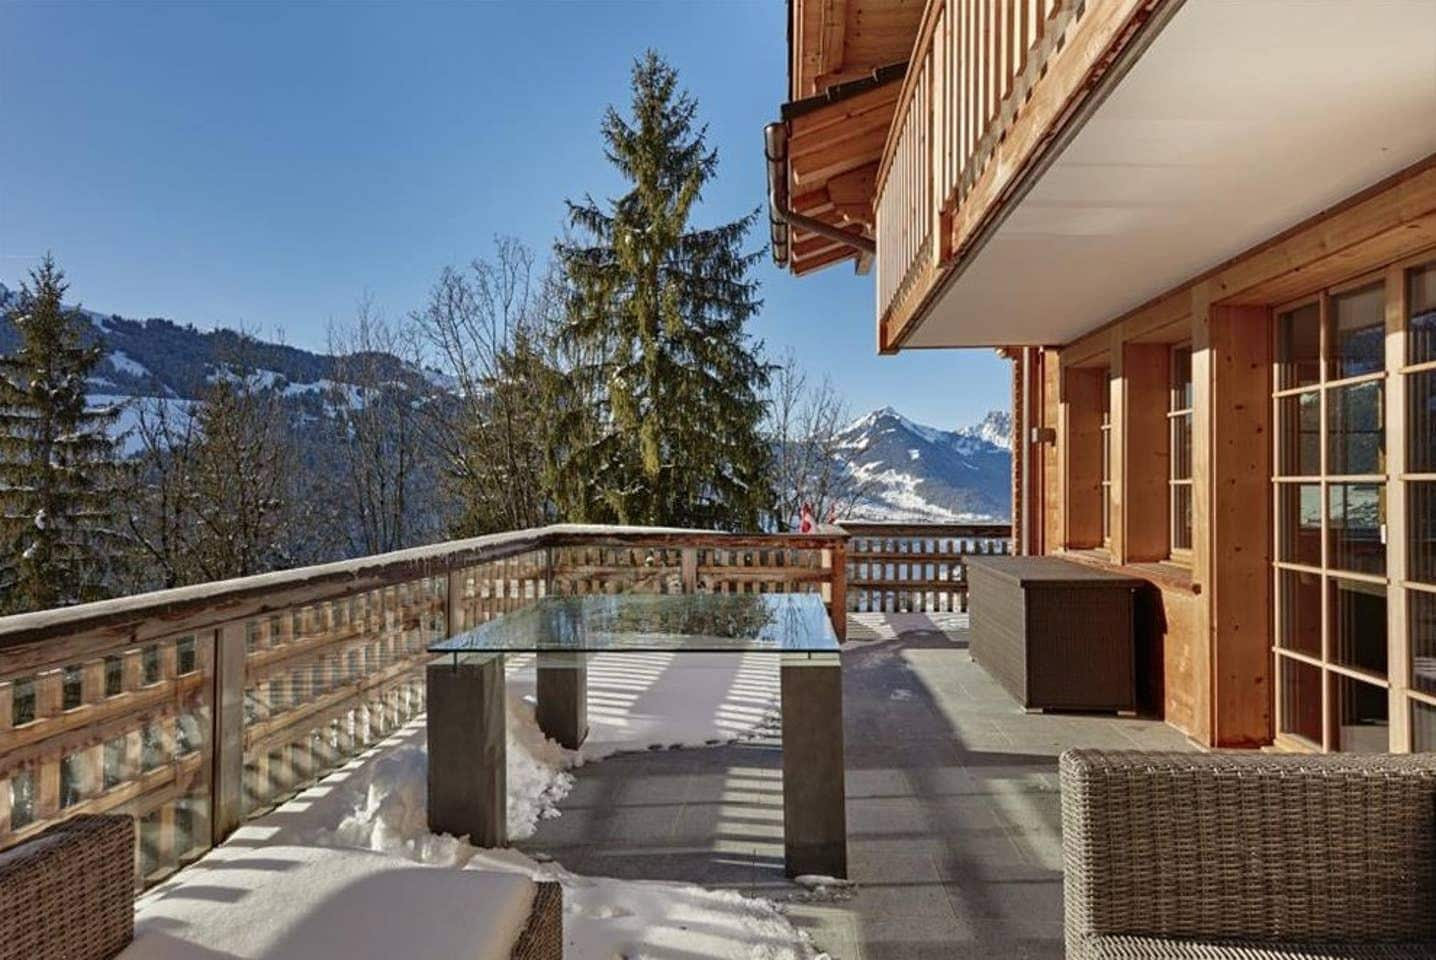 Property Image 1 - Magical Chalet in the Valley with Splendid Views